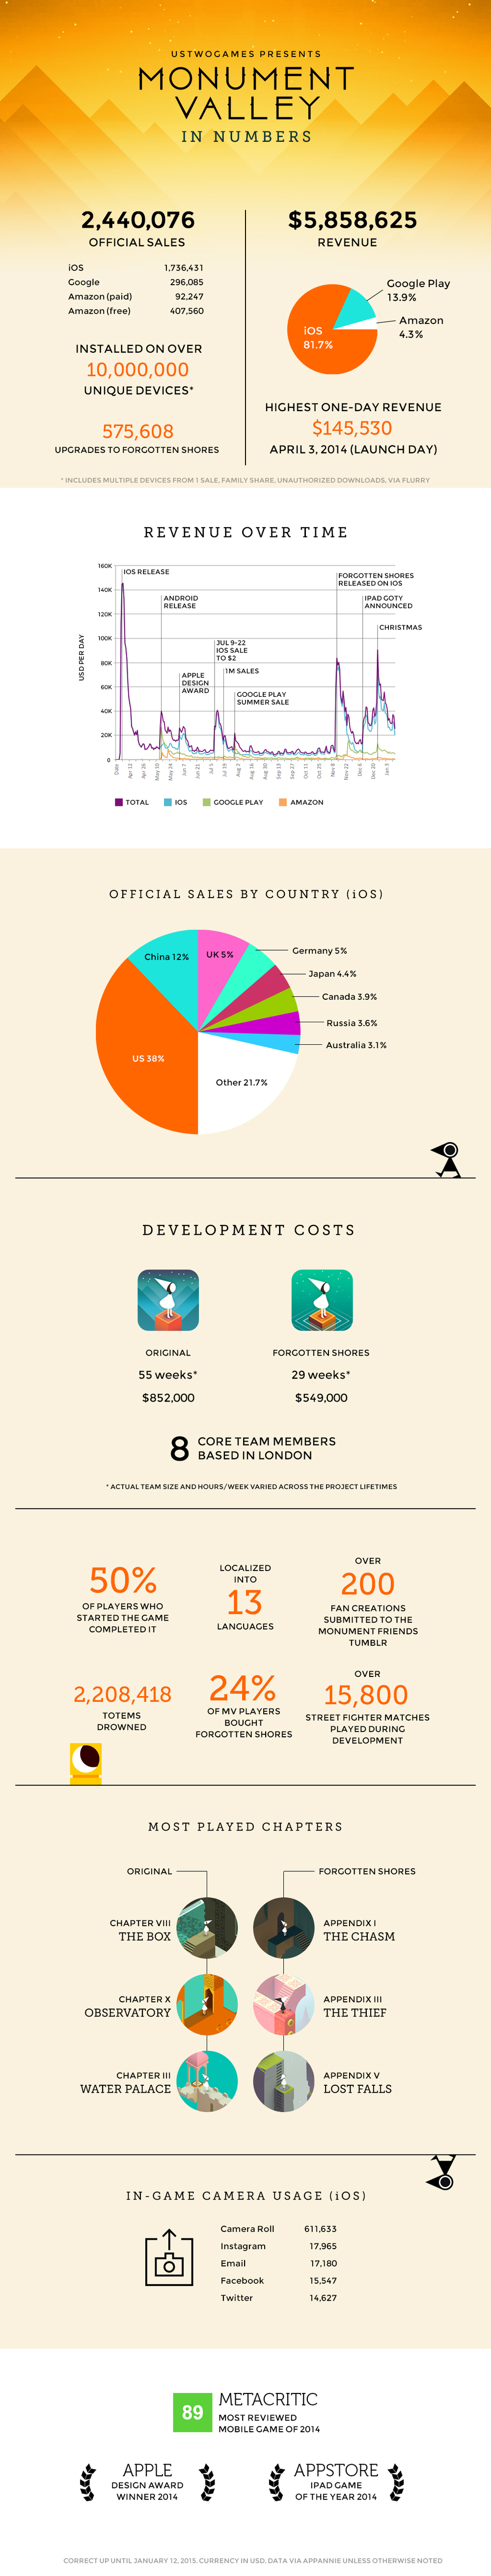 Monument Valley Creators Share Revenue Numbers, Costs ...